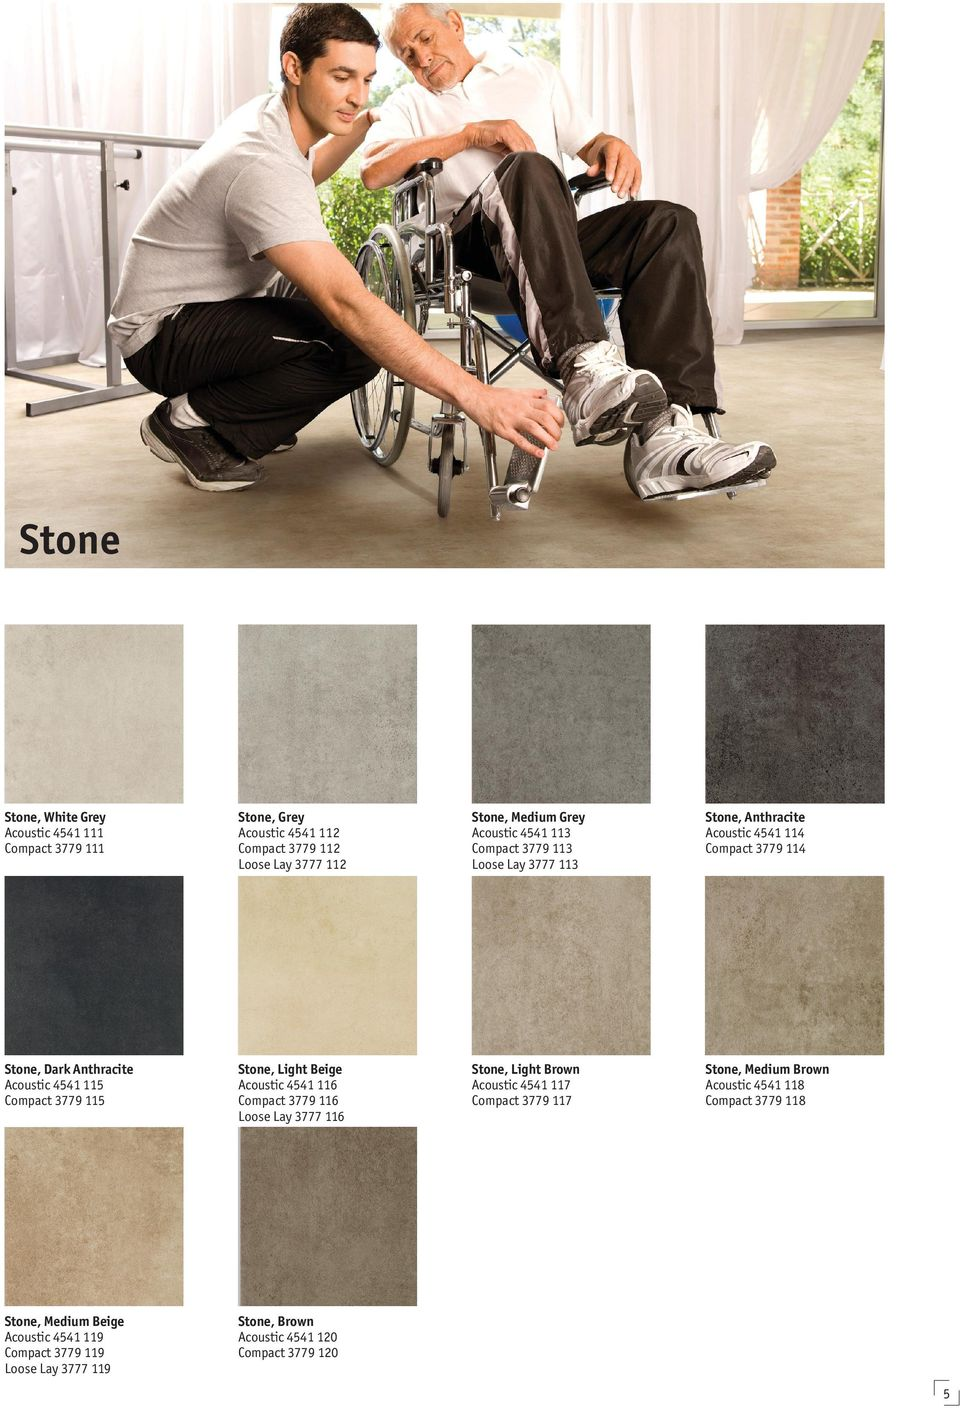 115 Stone, Light Beige Acoustic 4541 116 Compact 3779 116 Loose Lay 3777 116 Stone, Light Brown Acoustic 4541 117 Compact 3779 117 Stone, Medium Brown